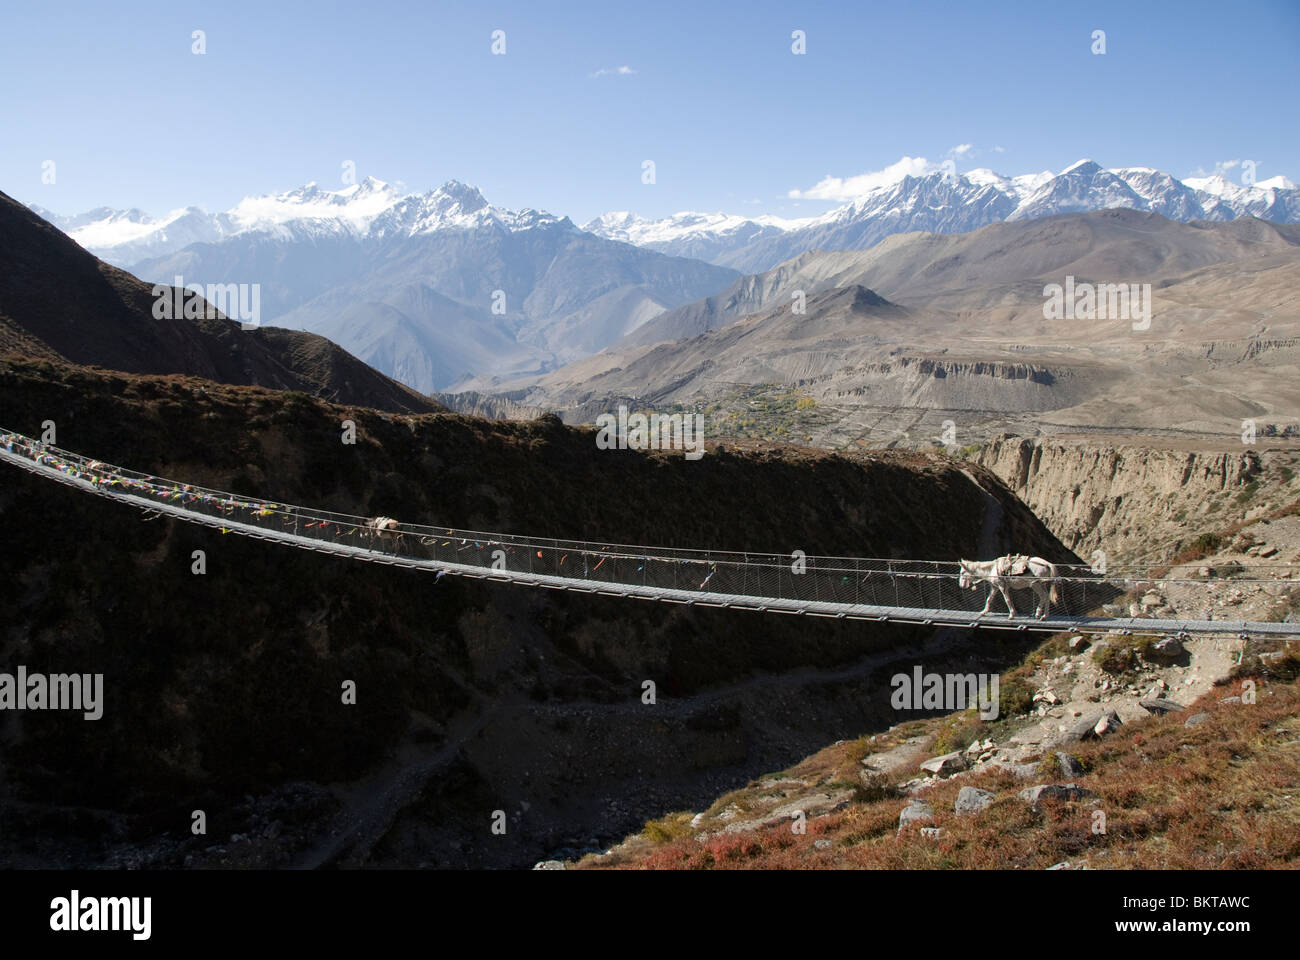 Donkeys crossing wire rope bridge near Muktinath, Annapurna ...